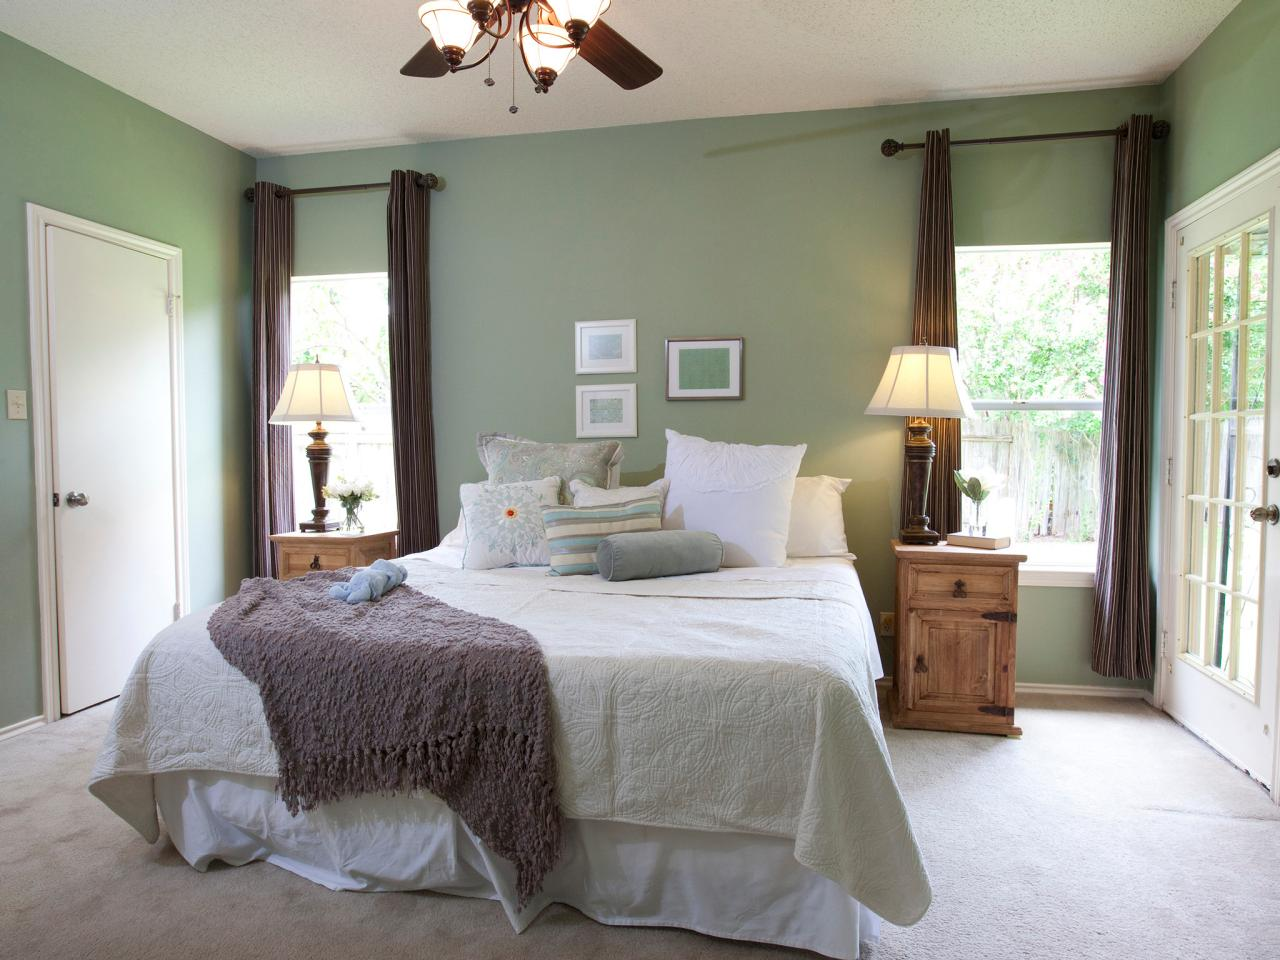 Photo page hgtv - Brown and green bedroom ...